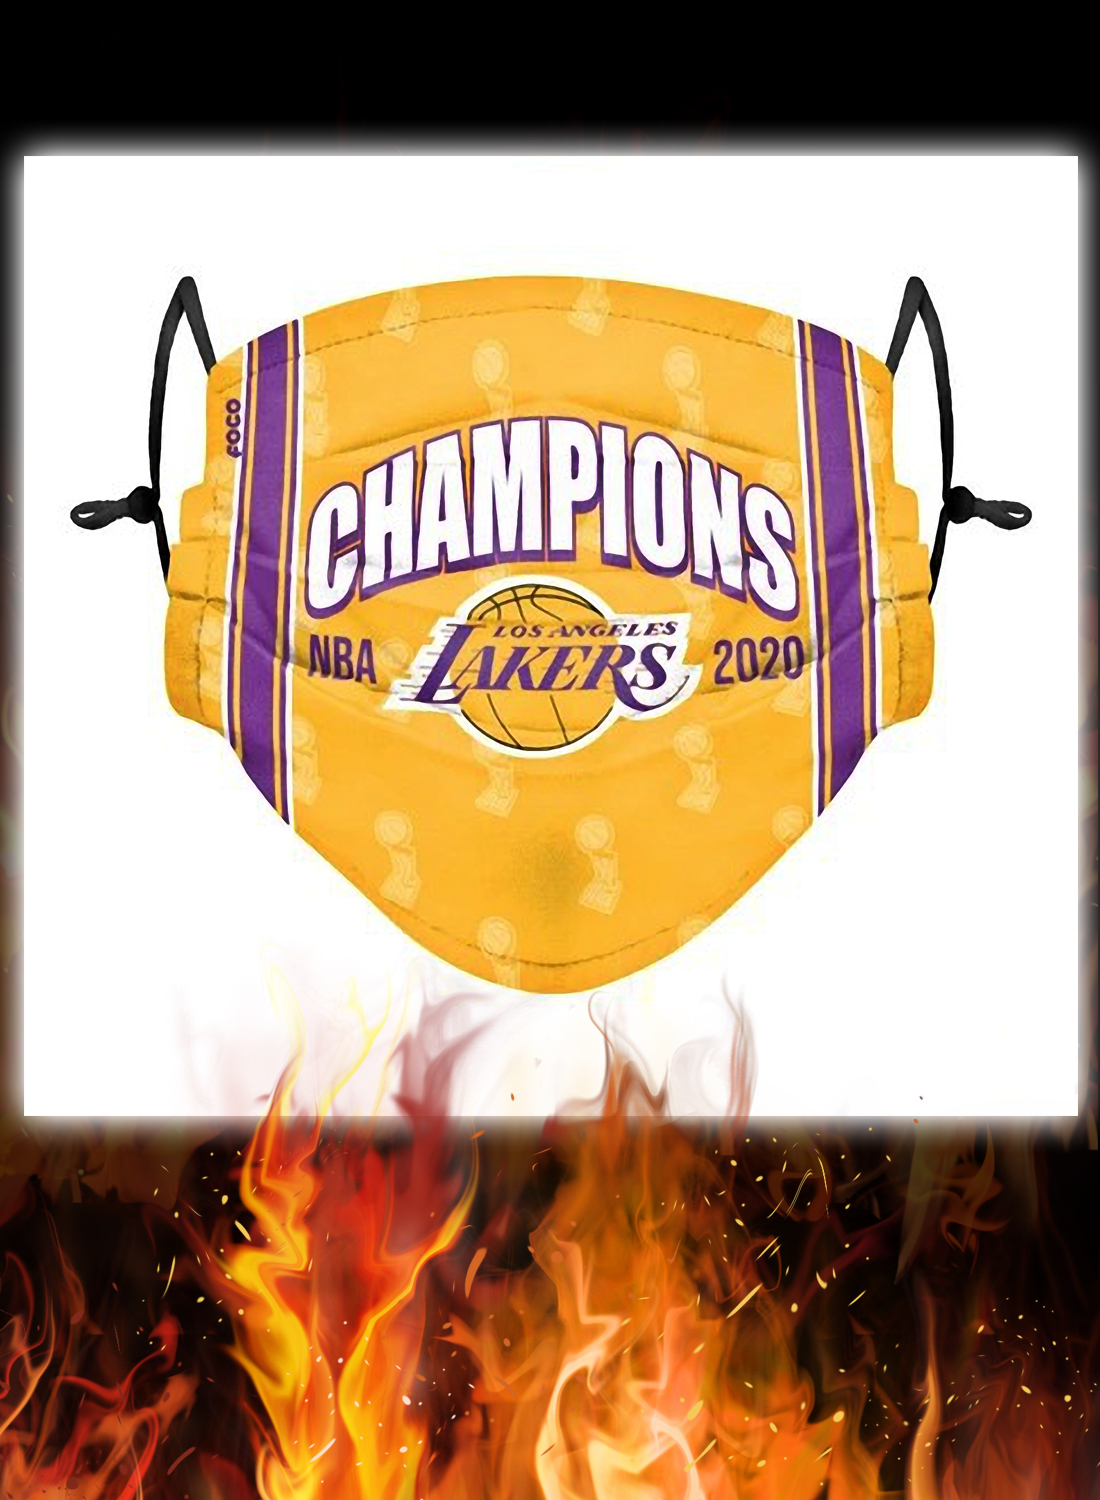 2020 NBA champions los angeles lakers face mask